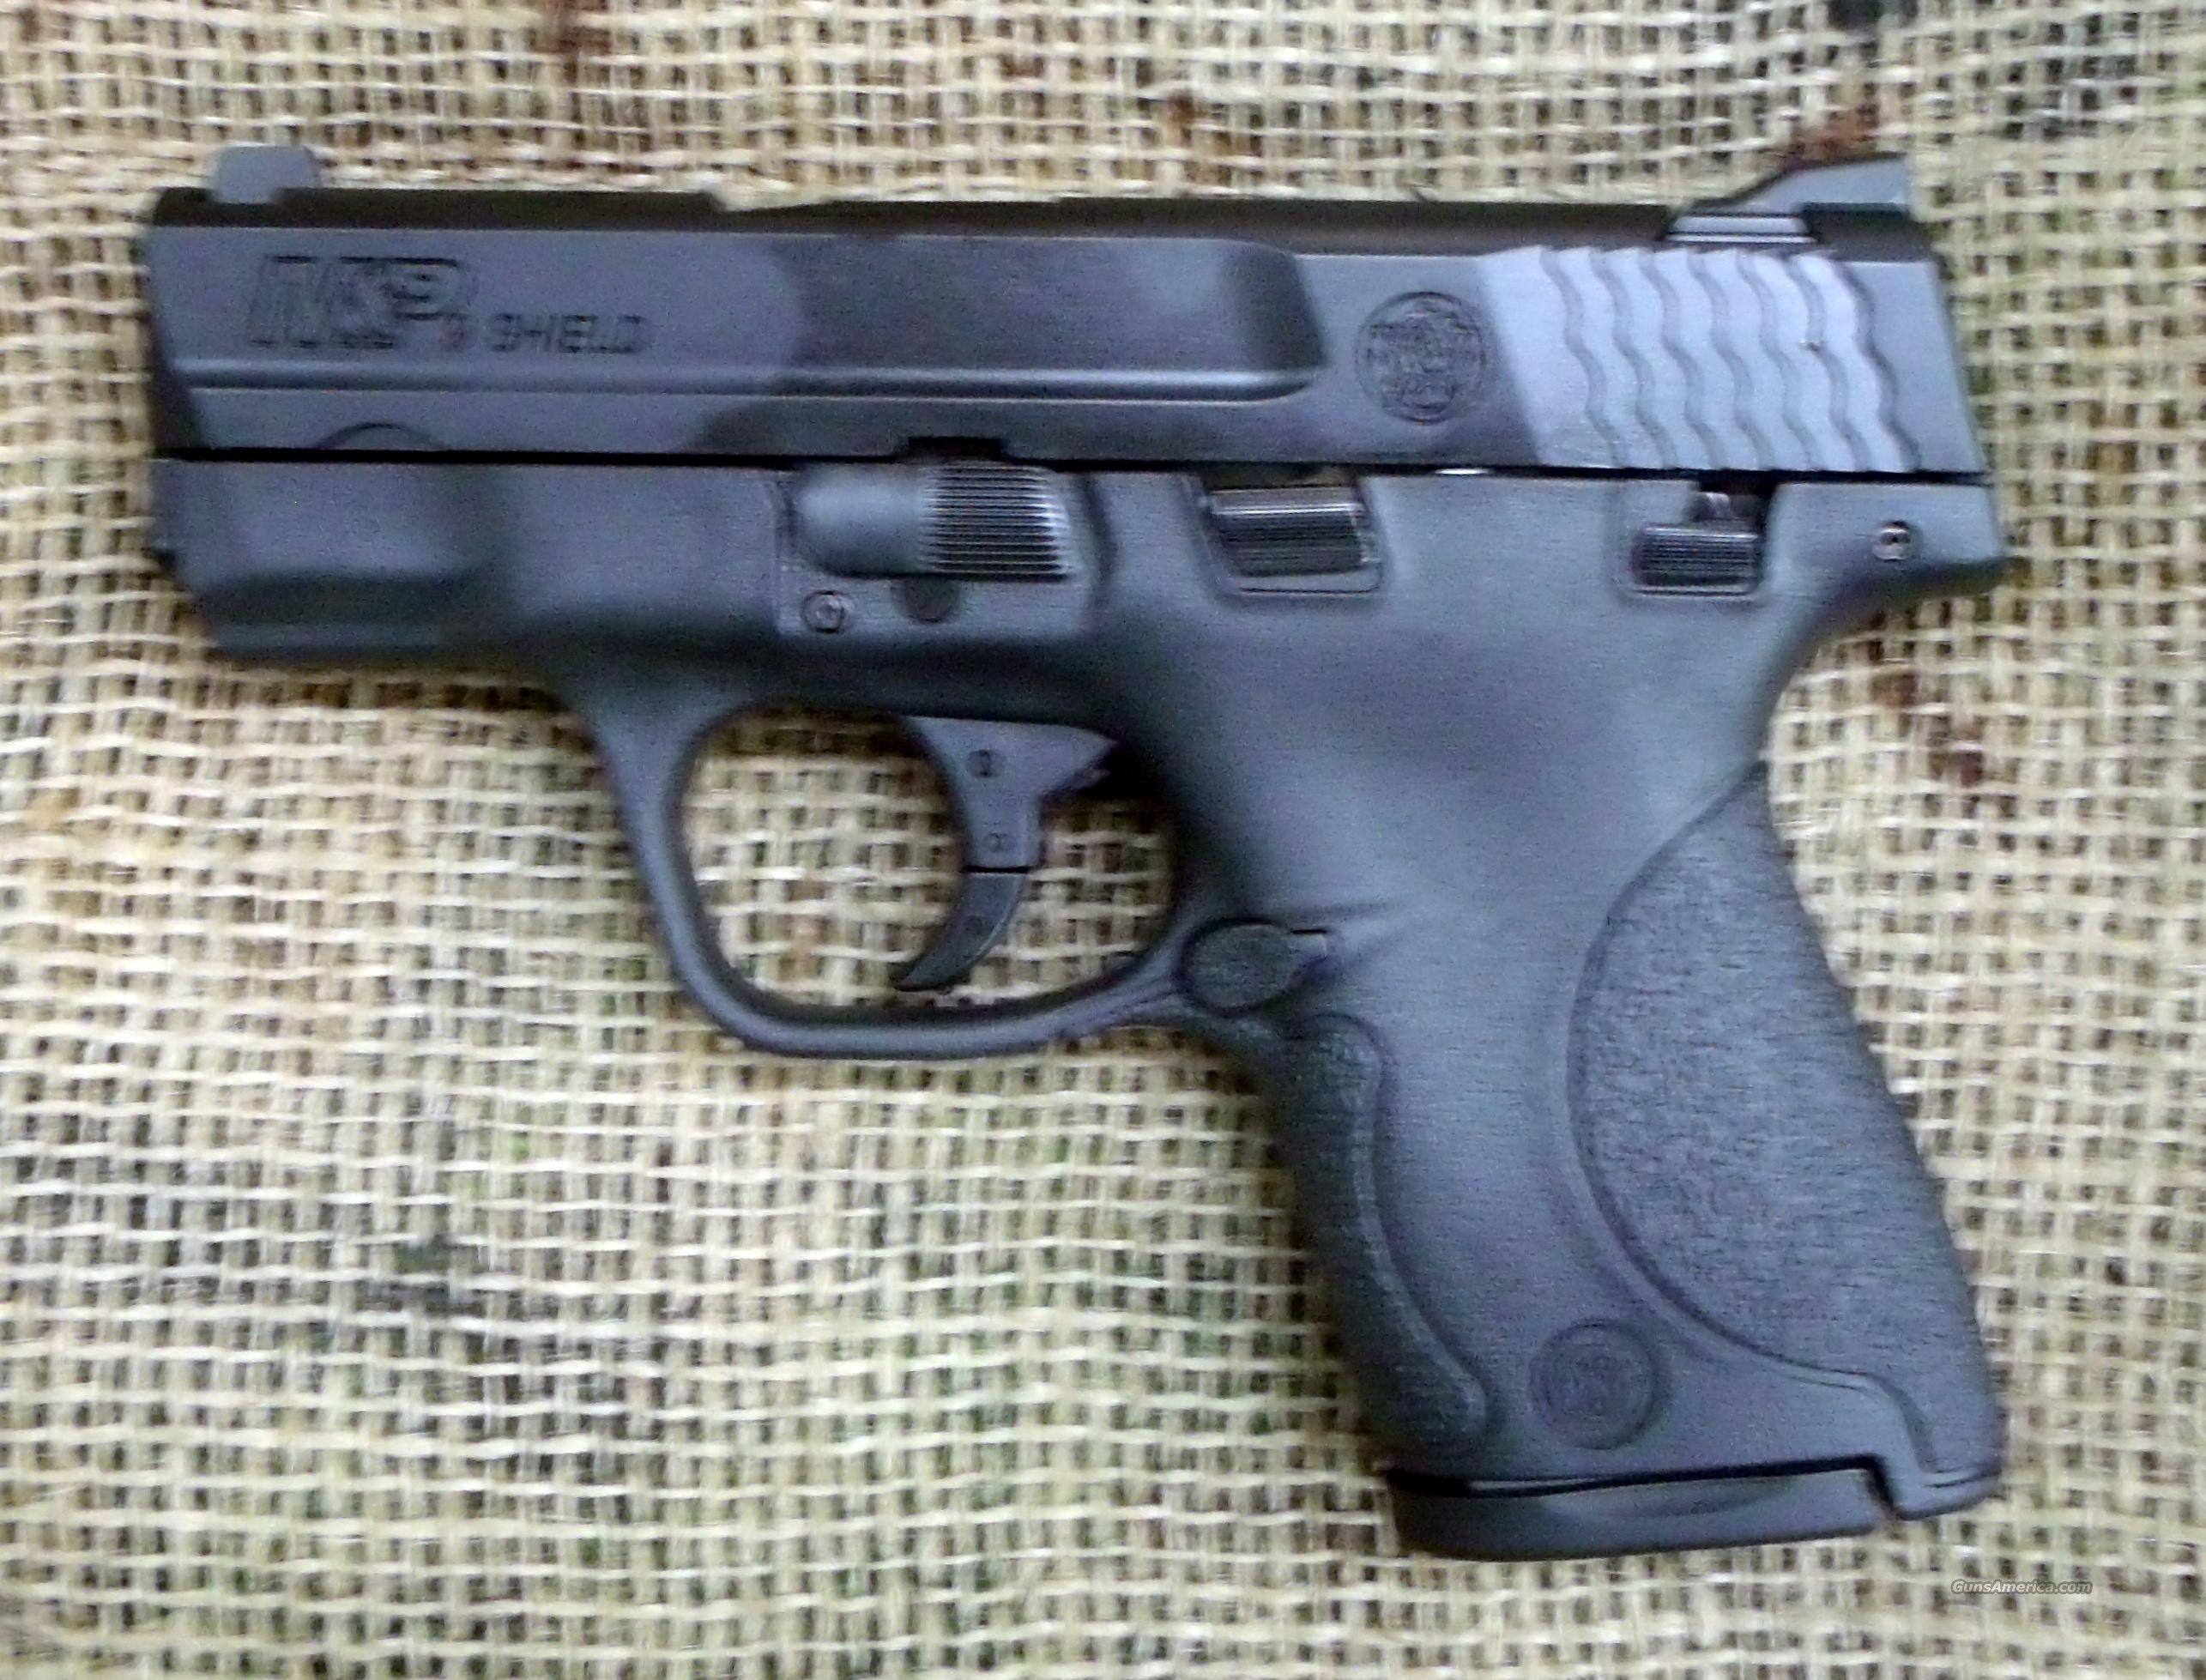 SMITH & WESSON M&P 9 Shield Pistol, 9mm Cal.  Guns > Pistols > Smith & Wesson Pistols - Autos > Shield